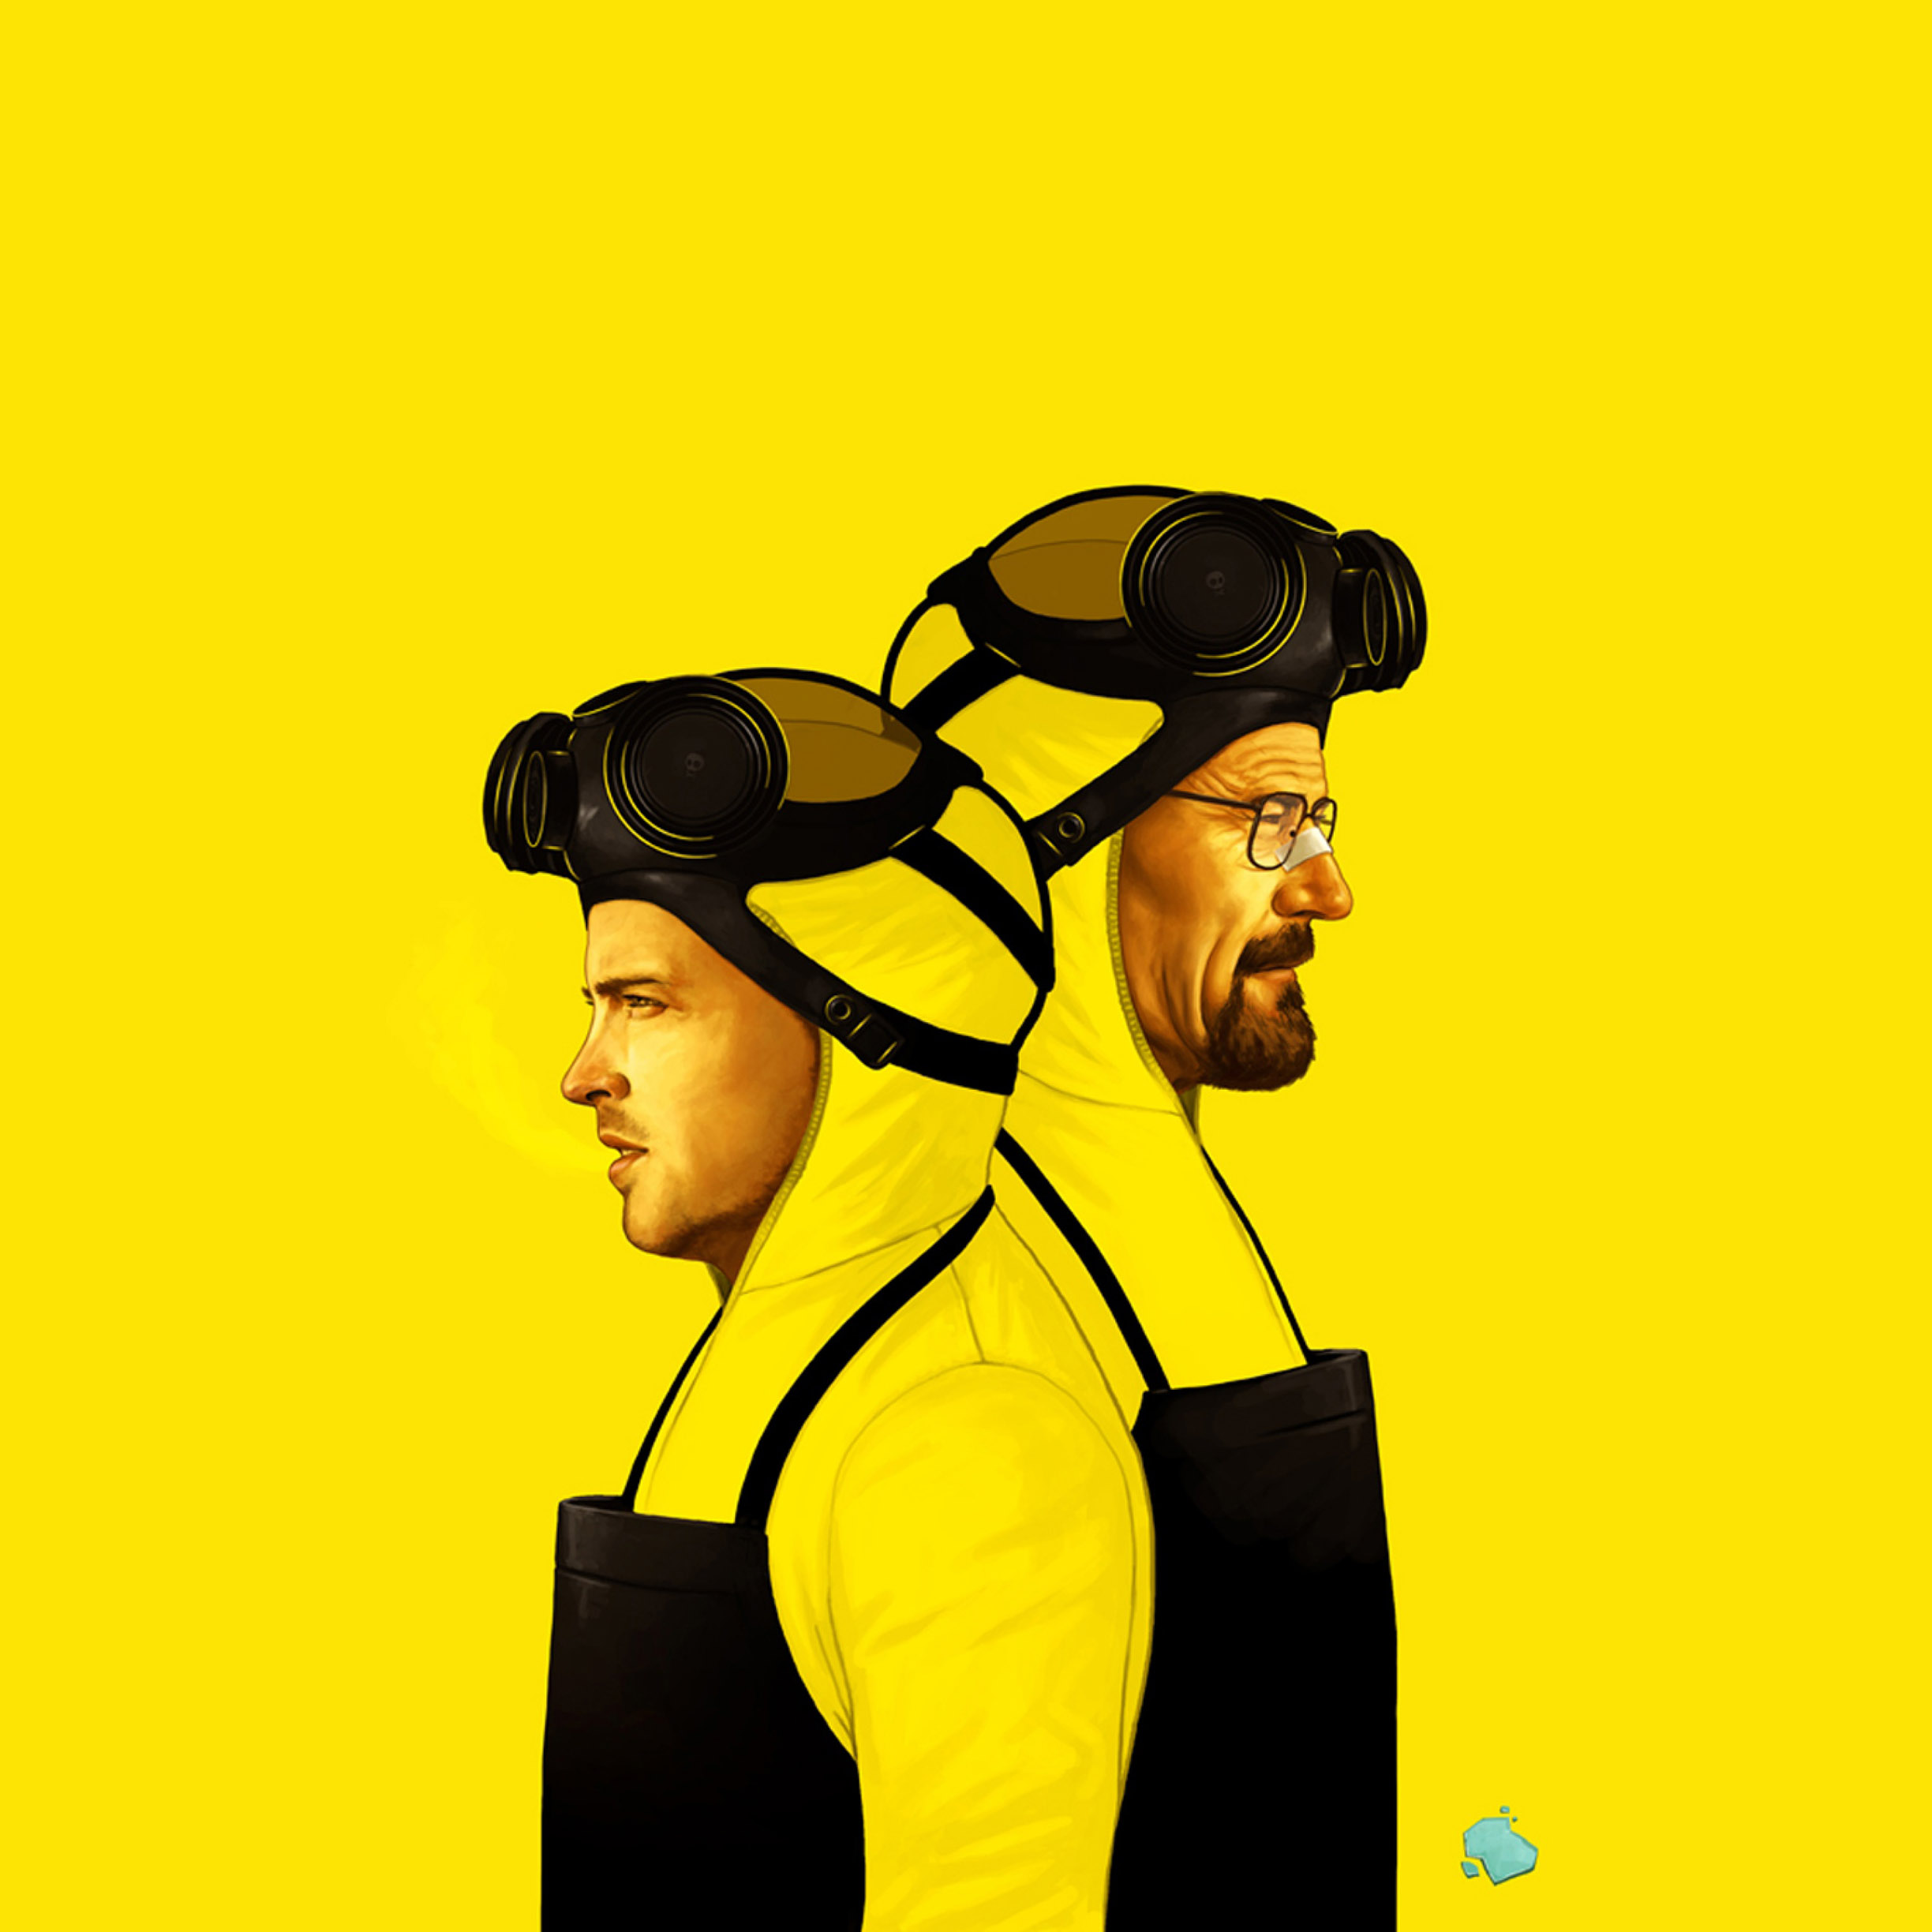 Download: iPad; iPhone ... & Breaking Bad wallpapers for iPhone and iPad